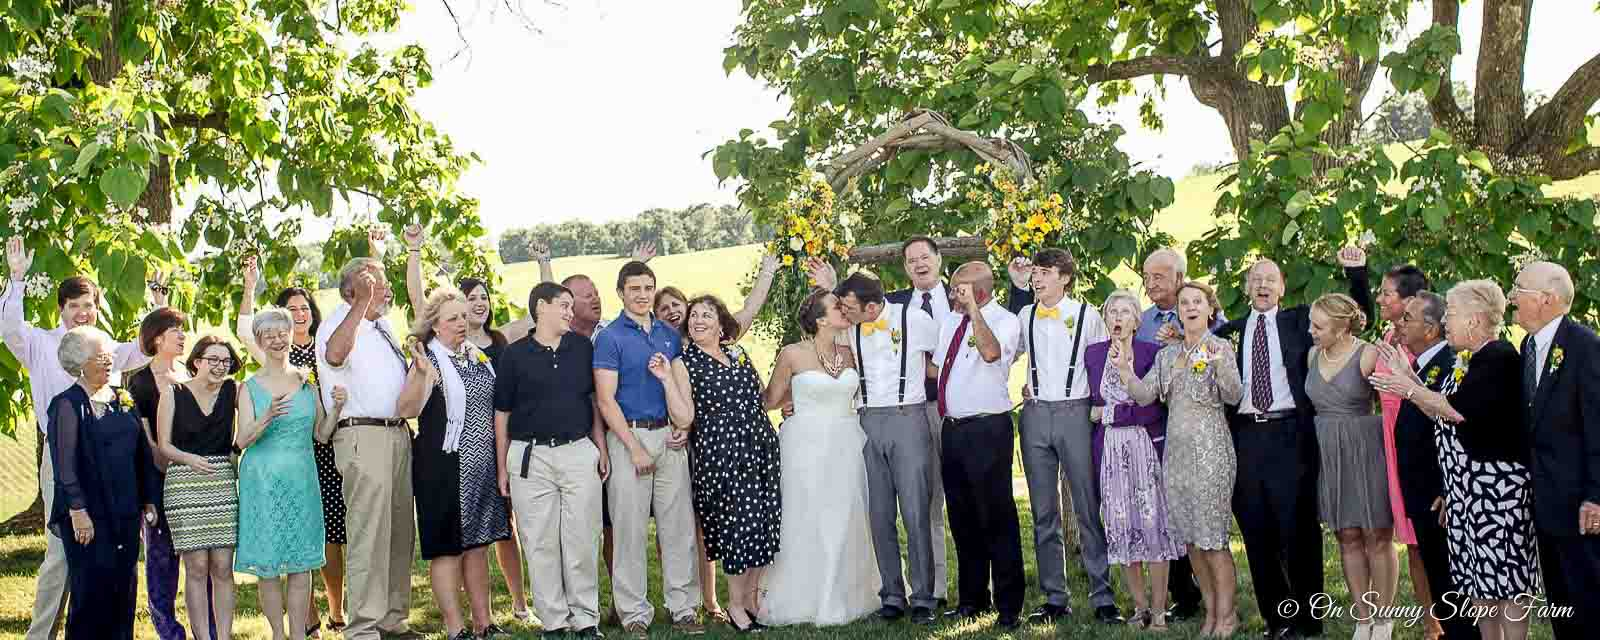 Real_Wedding_On_Sunny_Slope_Farm-10